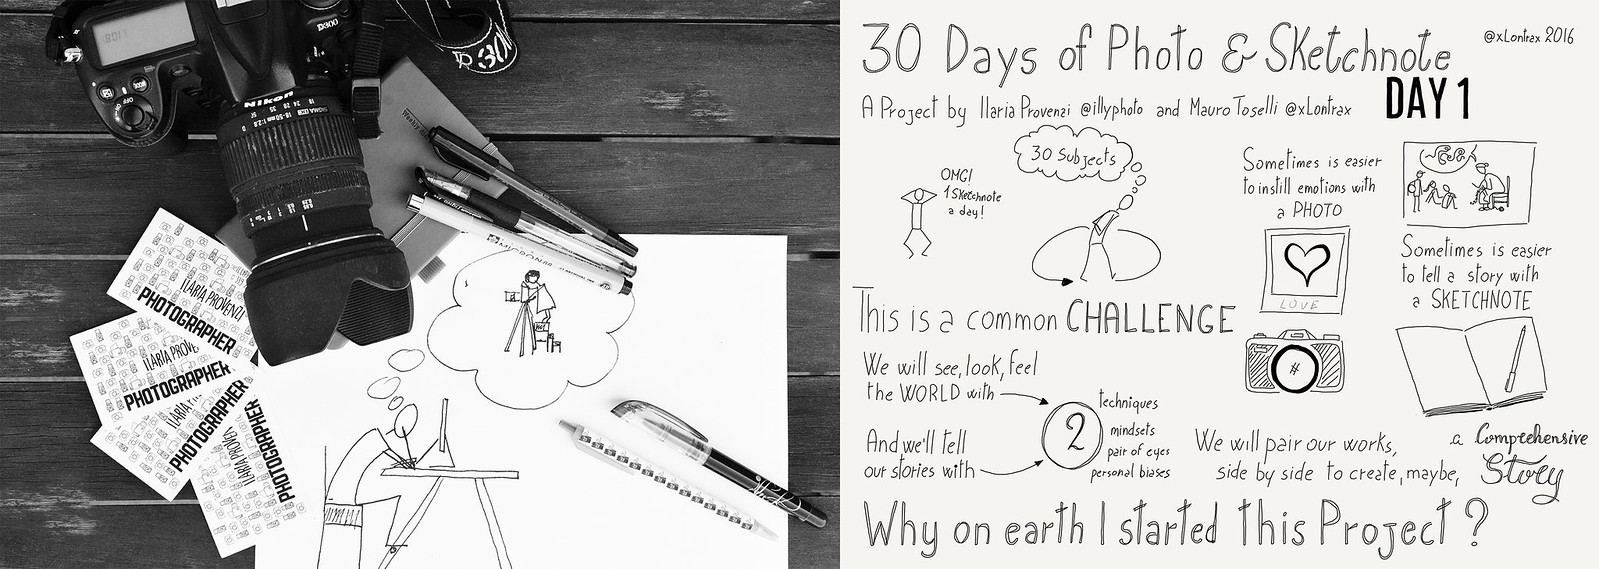 Day 01. Ma perchè ho iniziato questo progetto? - Why on earth I started this project?